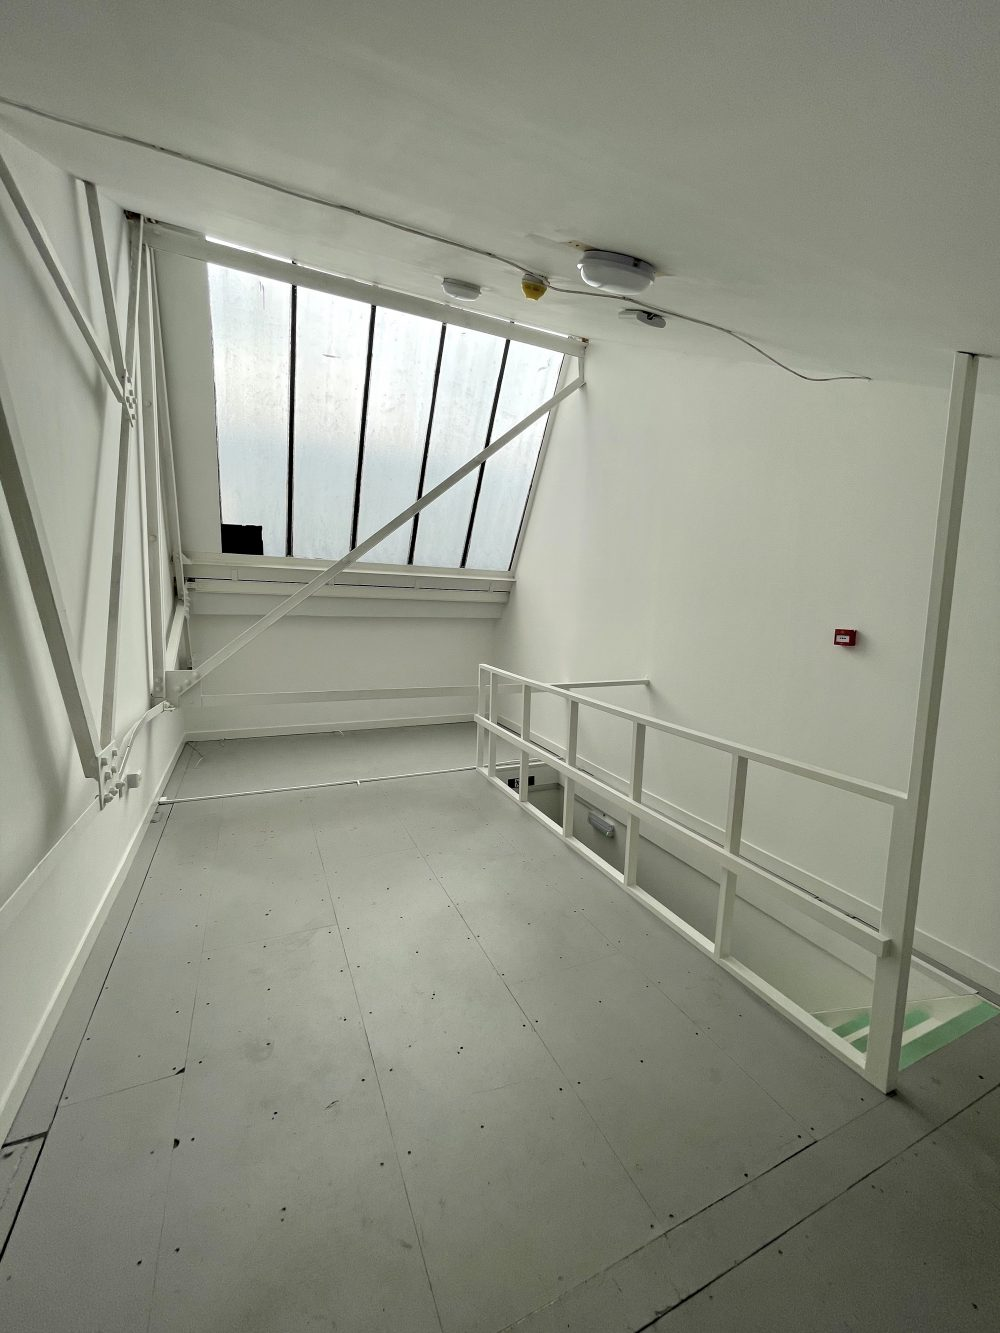 Studio Available to rent in N17 Mill Mead rd U5 Pic13